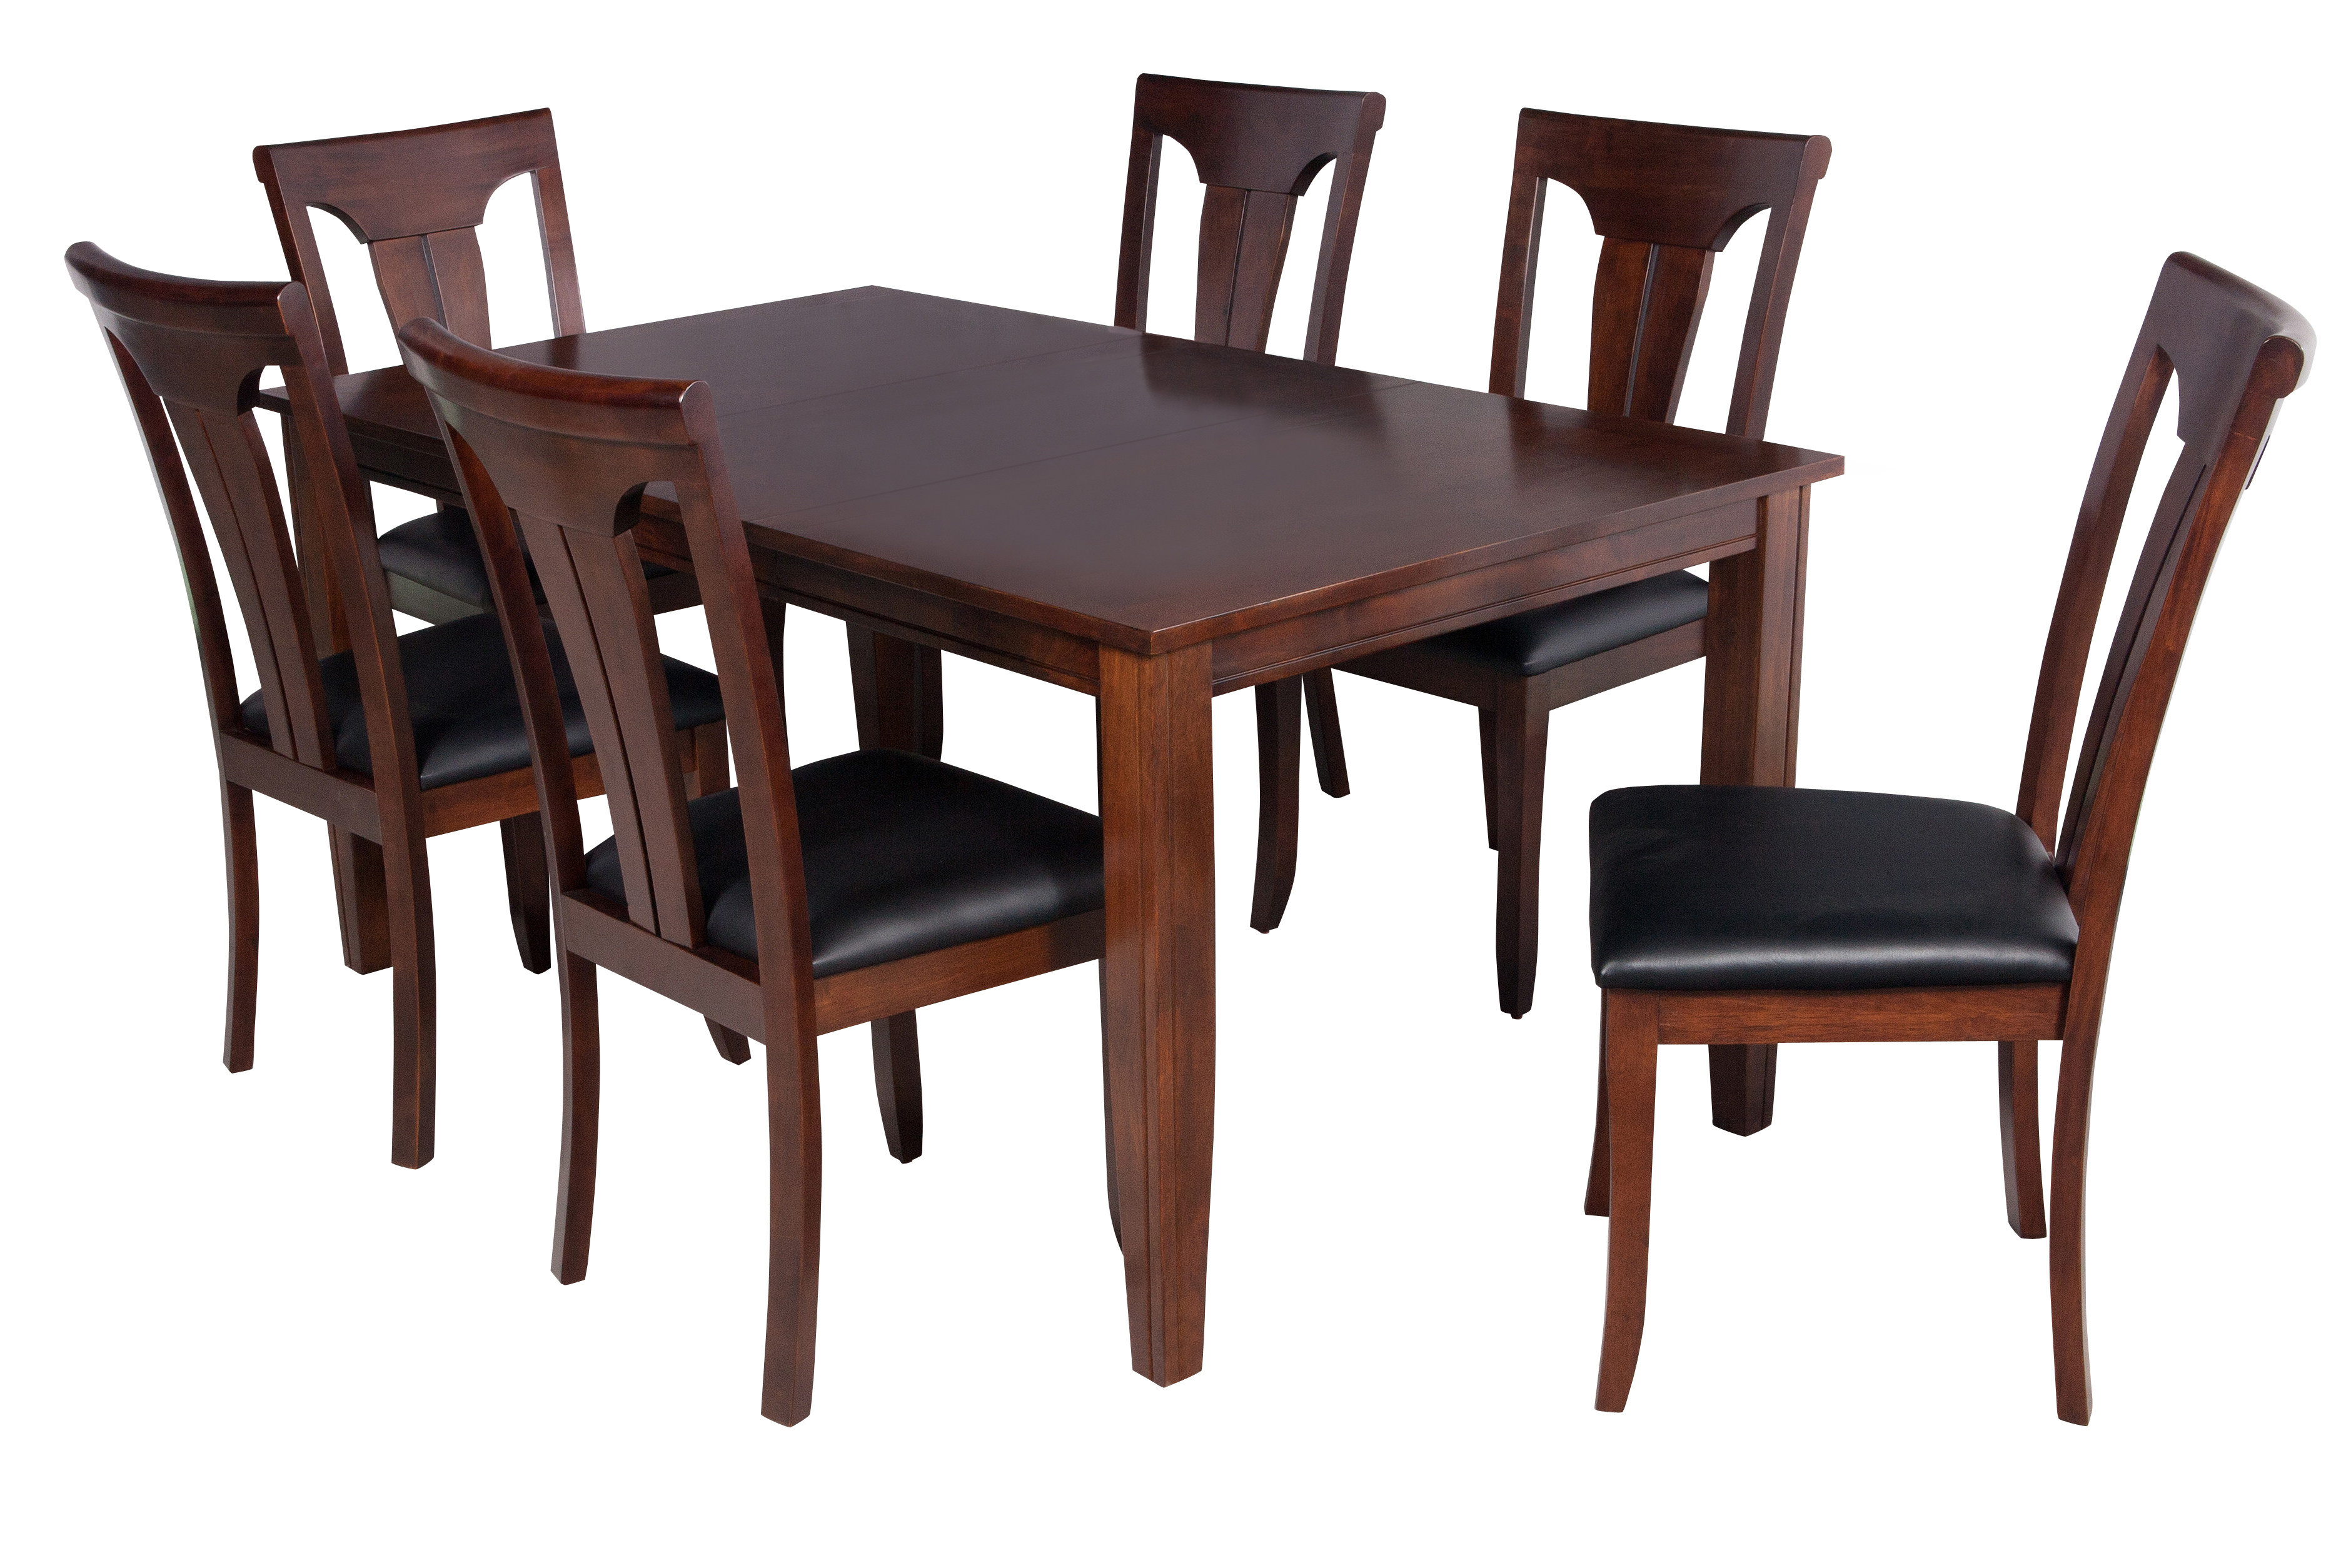 Wayfair Inside 2019 Adan 5 Piece Solid Wood Dining Sets (Set Of 5) (View 8 of 25)